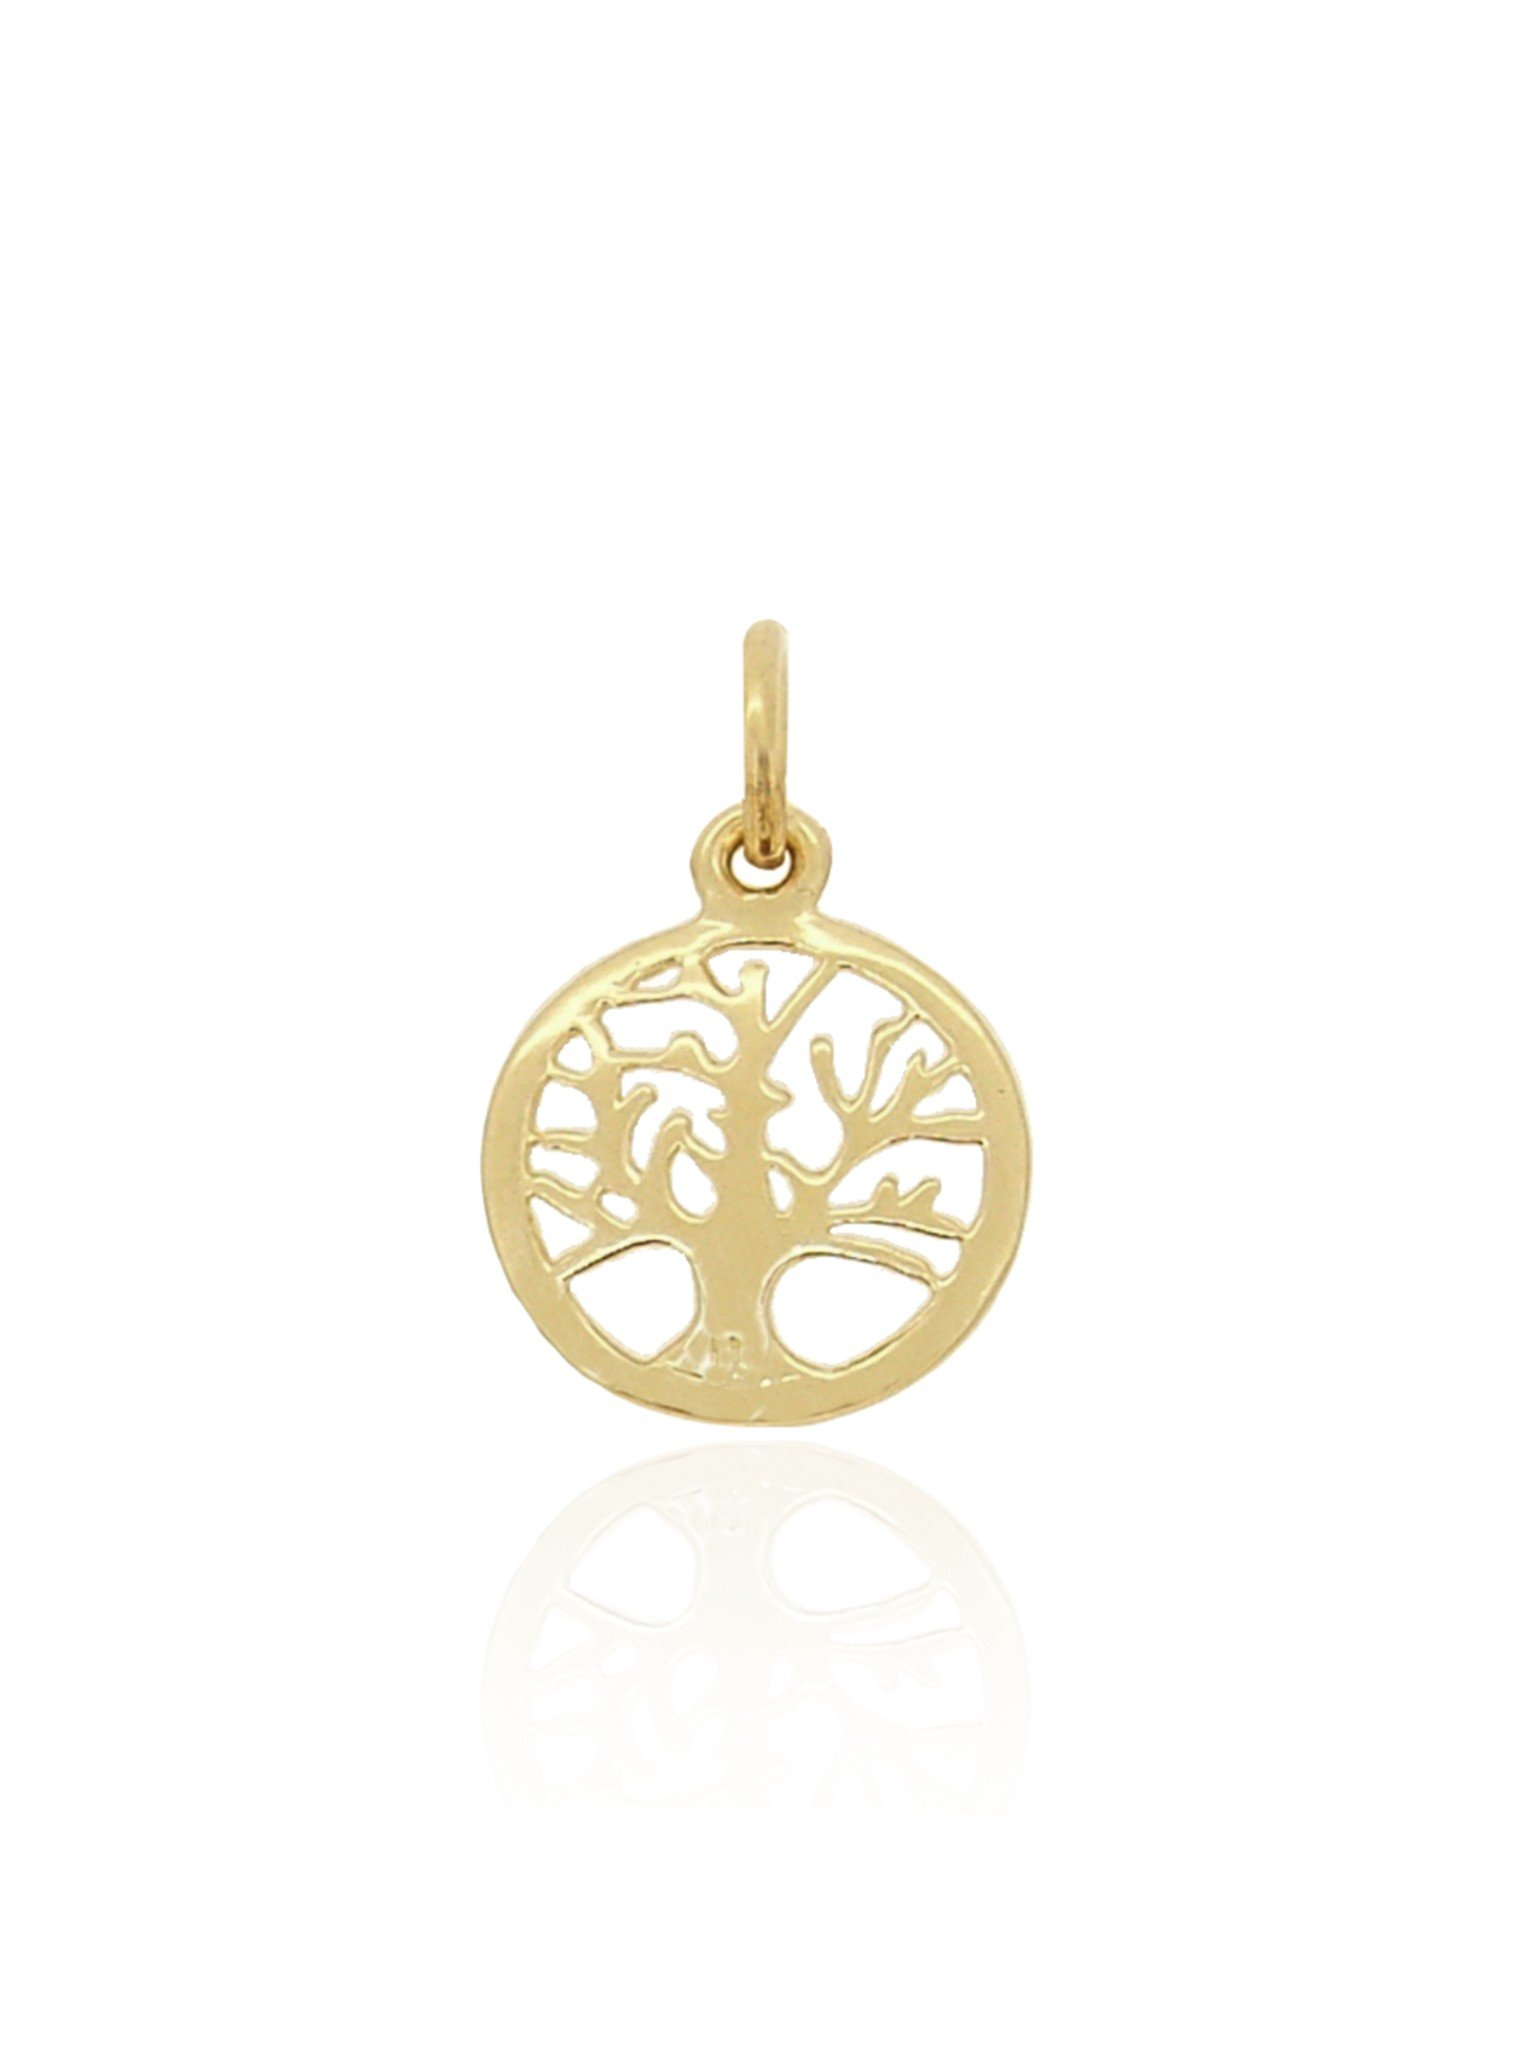 Tree of Life 16mm Charm Pendant in 9ct Gold